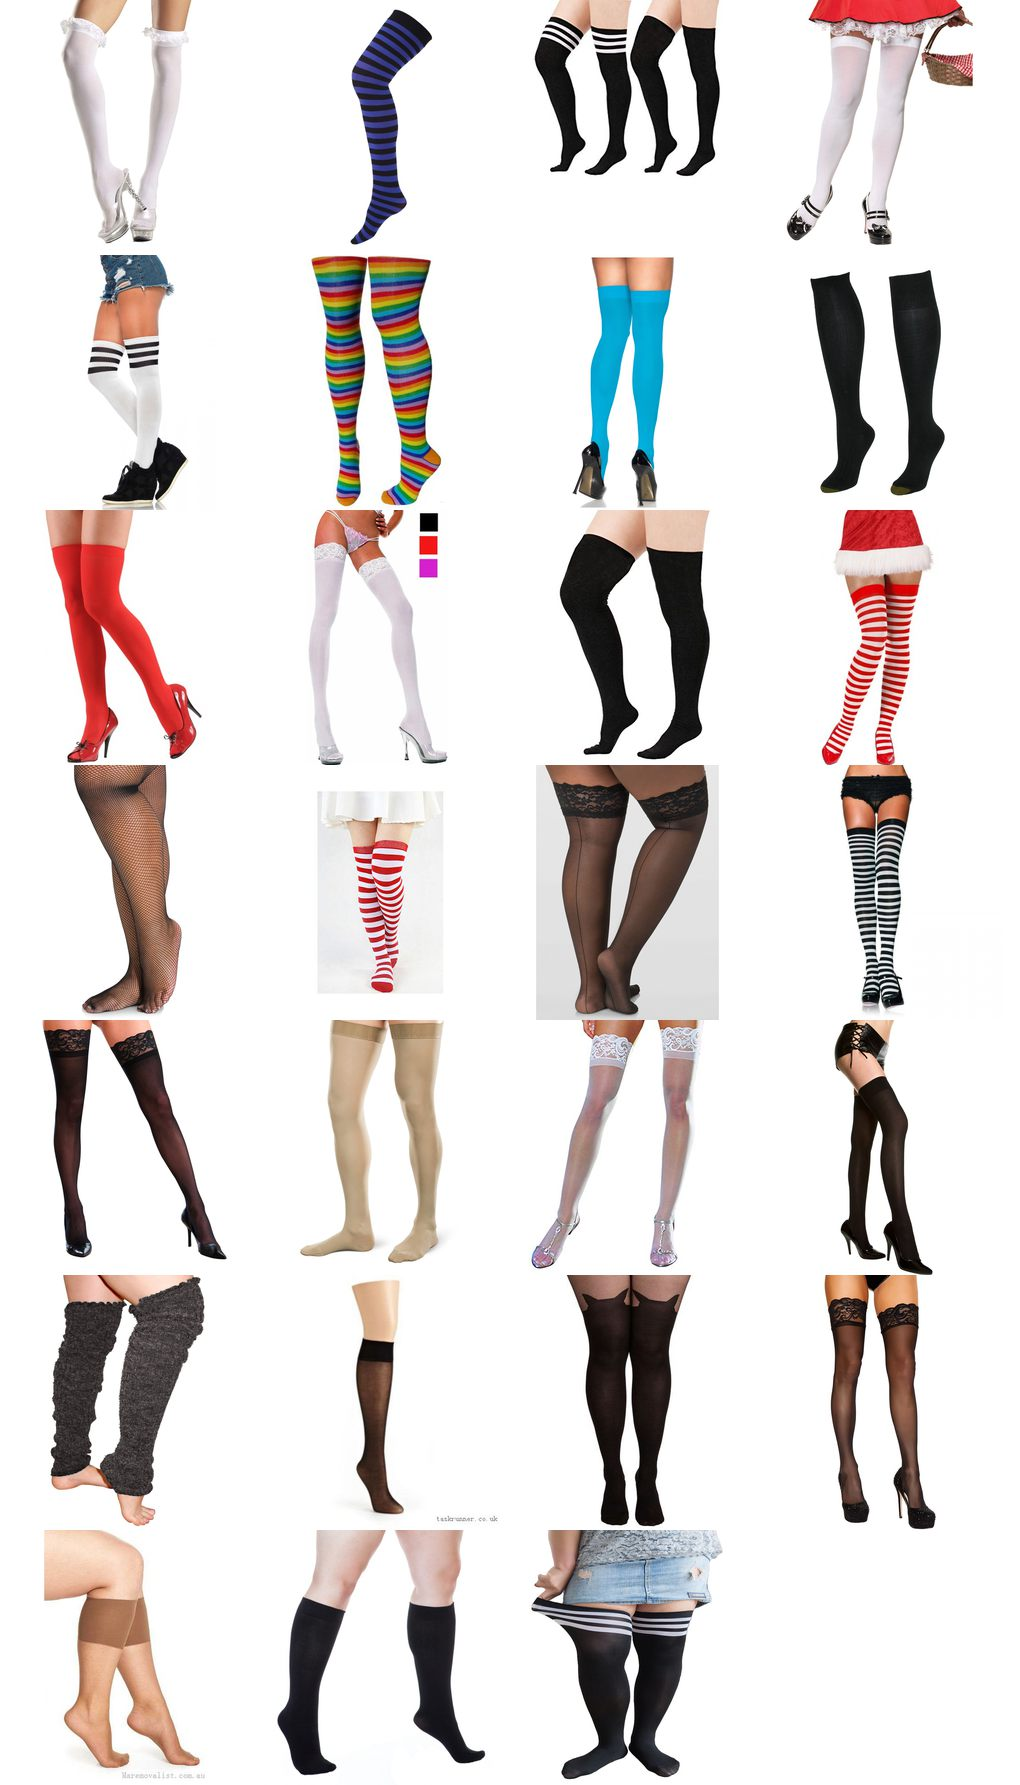 thigh high plus size socks